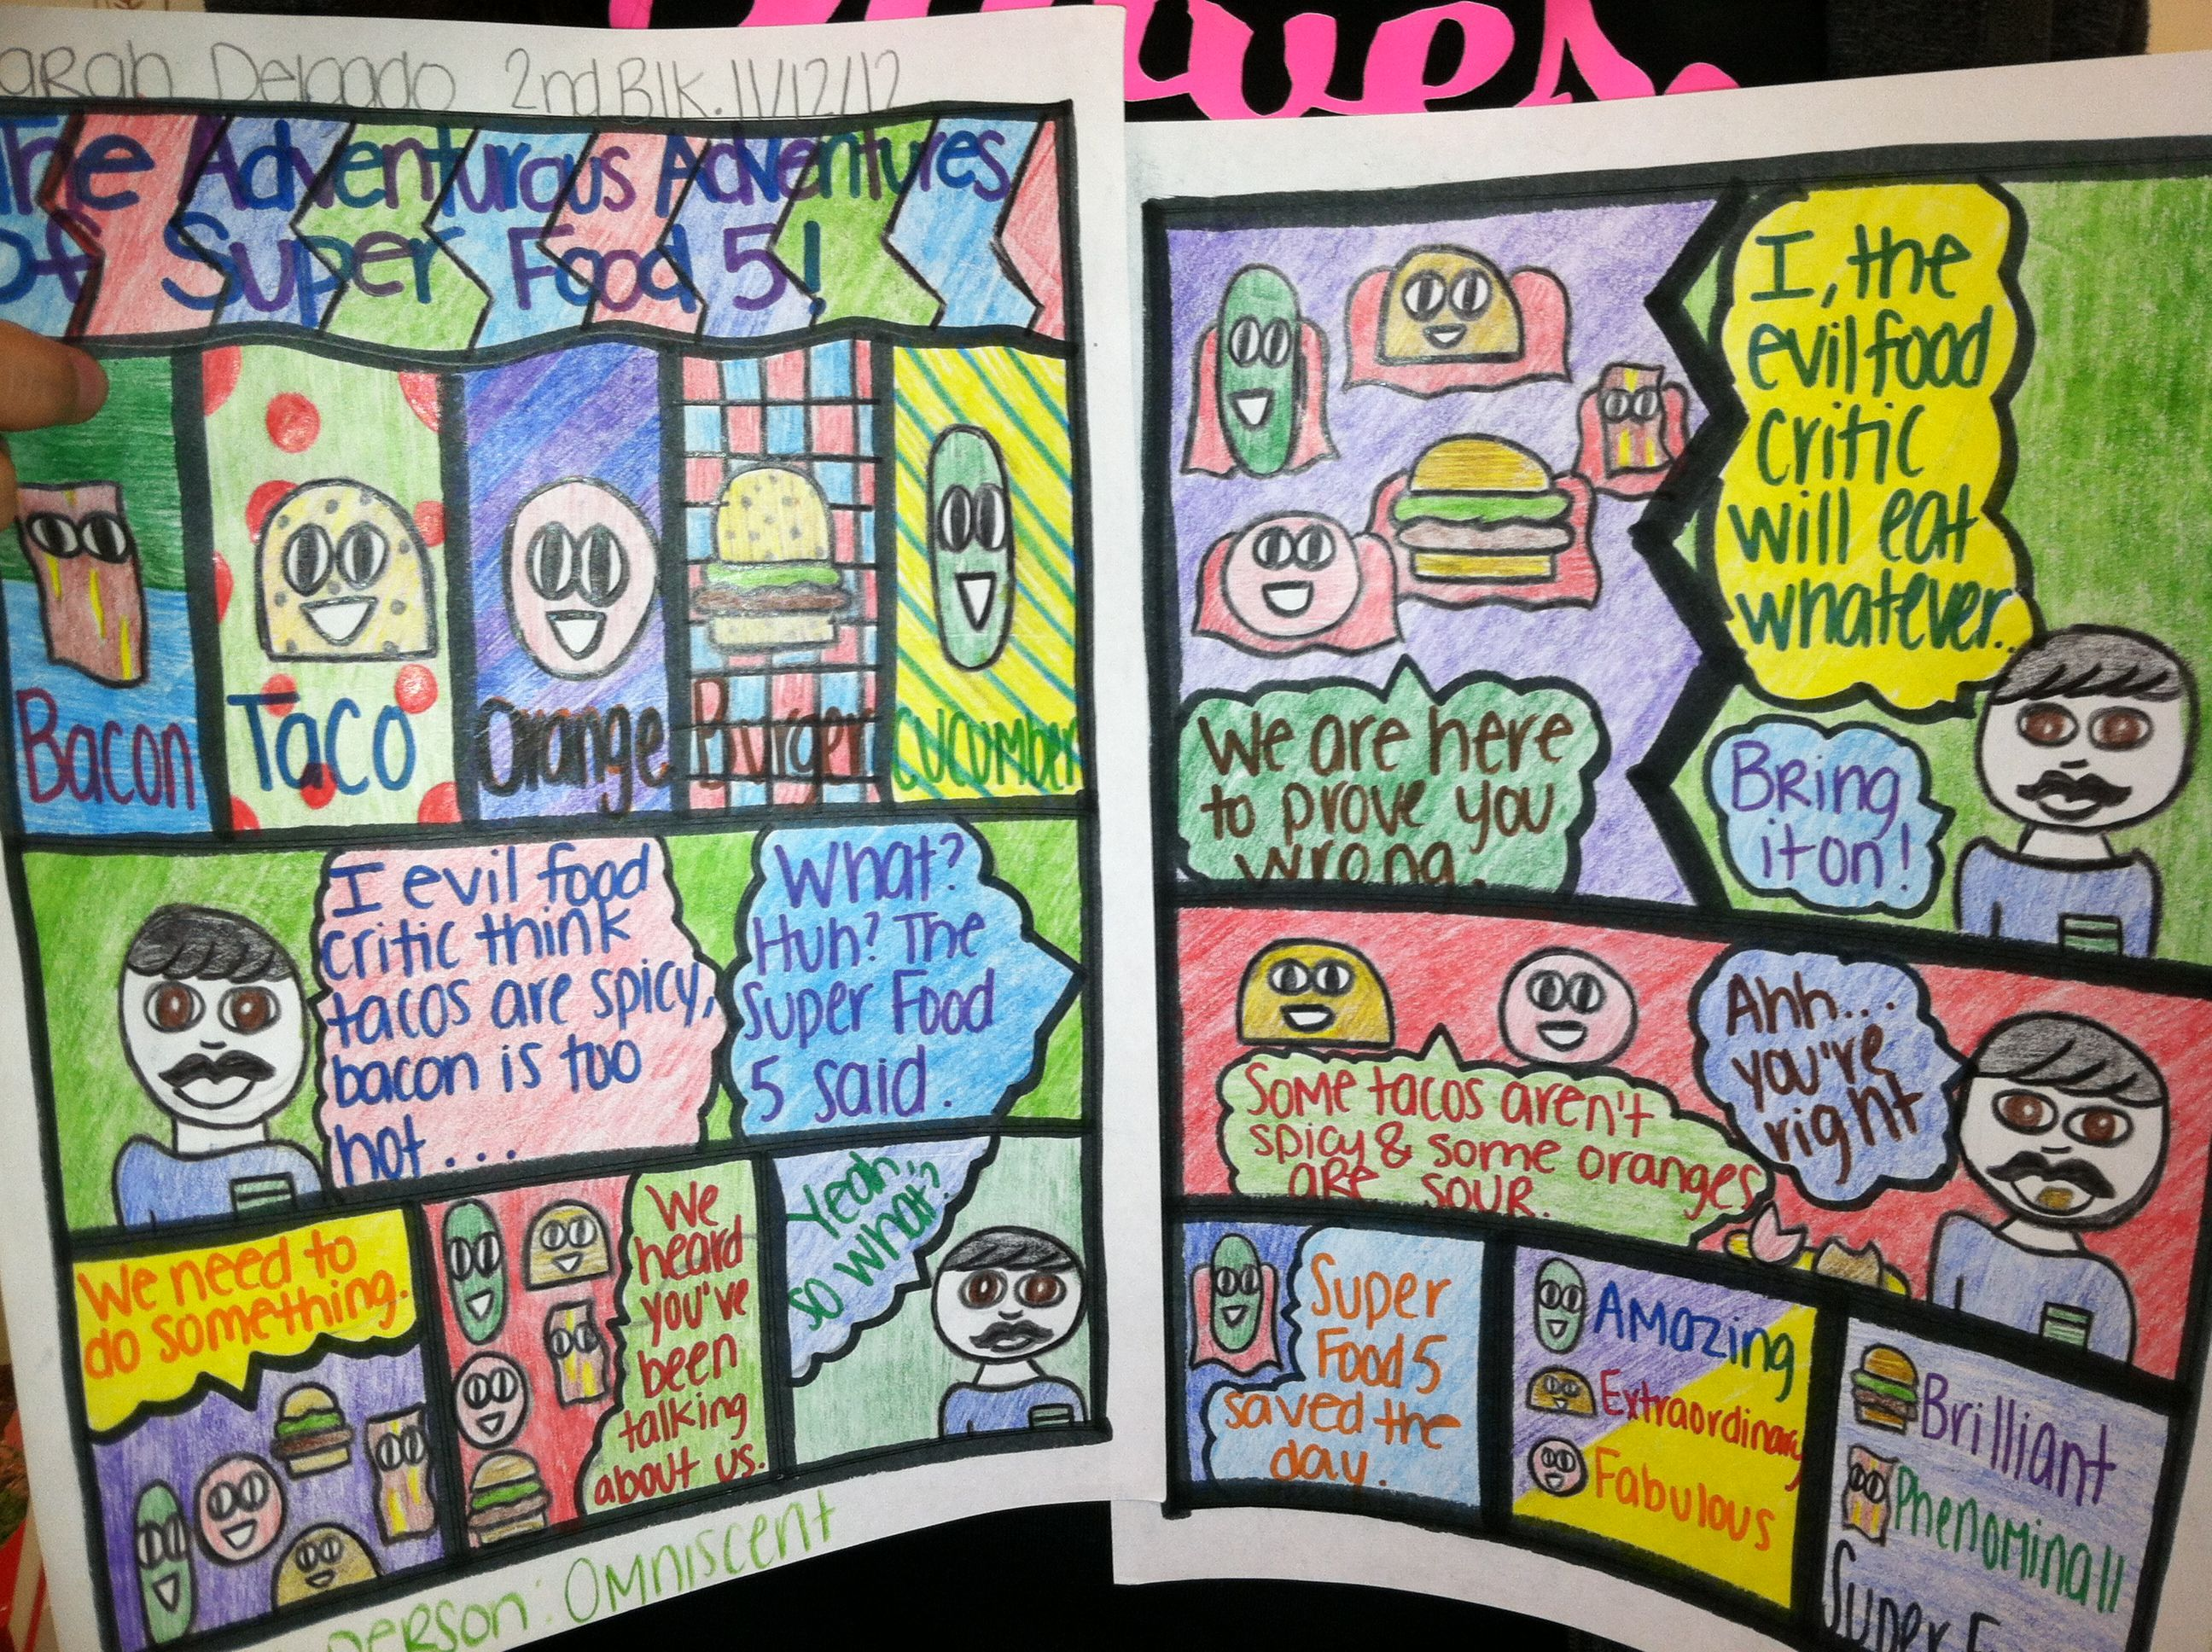 3rd Person Omniscient Point Of View Comic 8th Grade